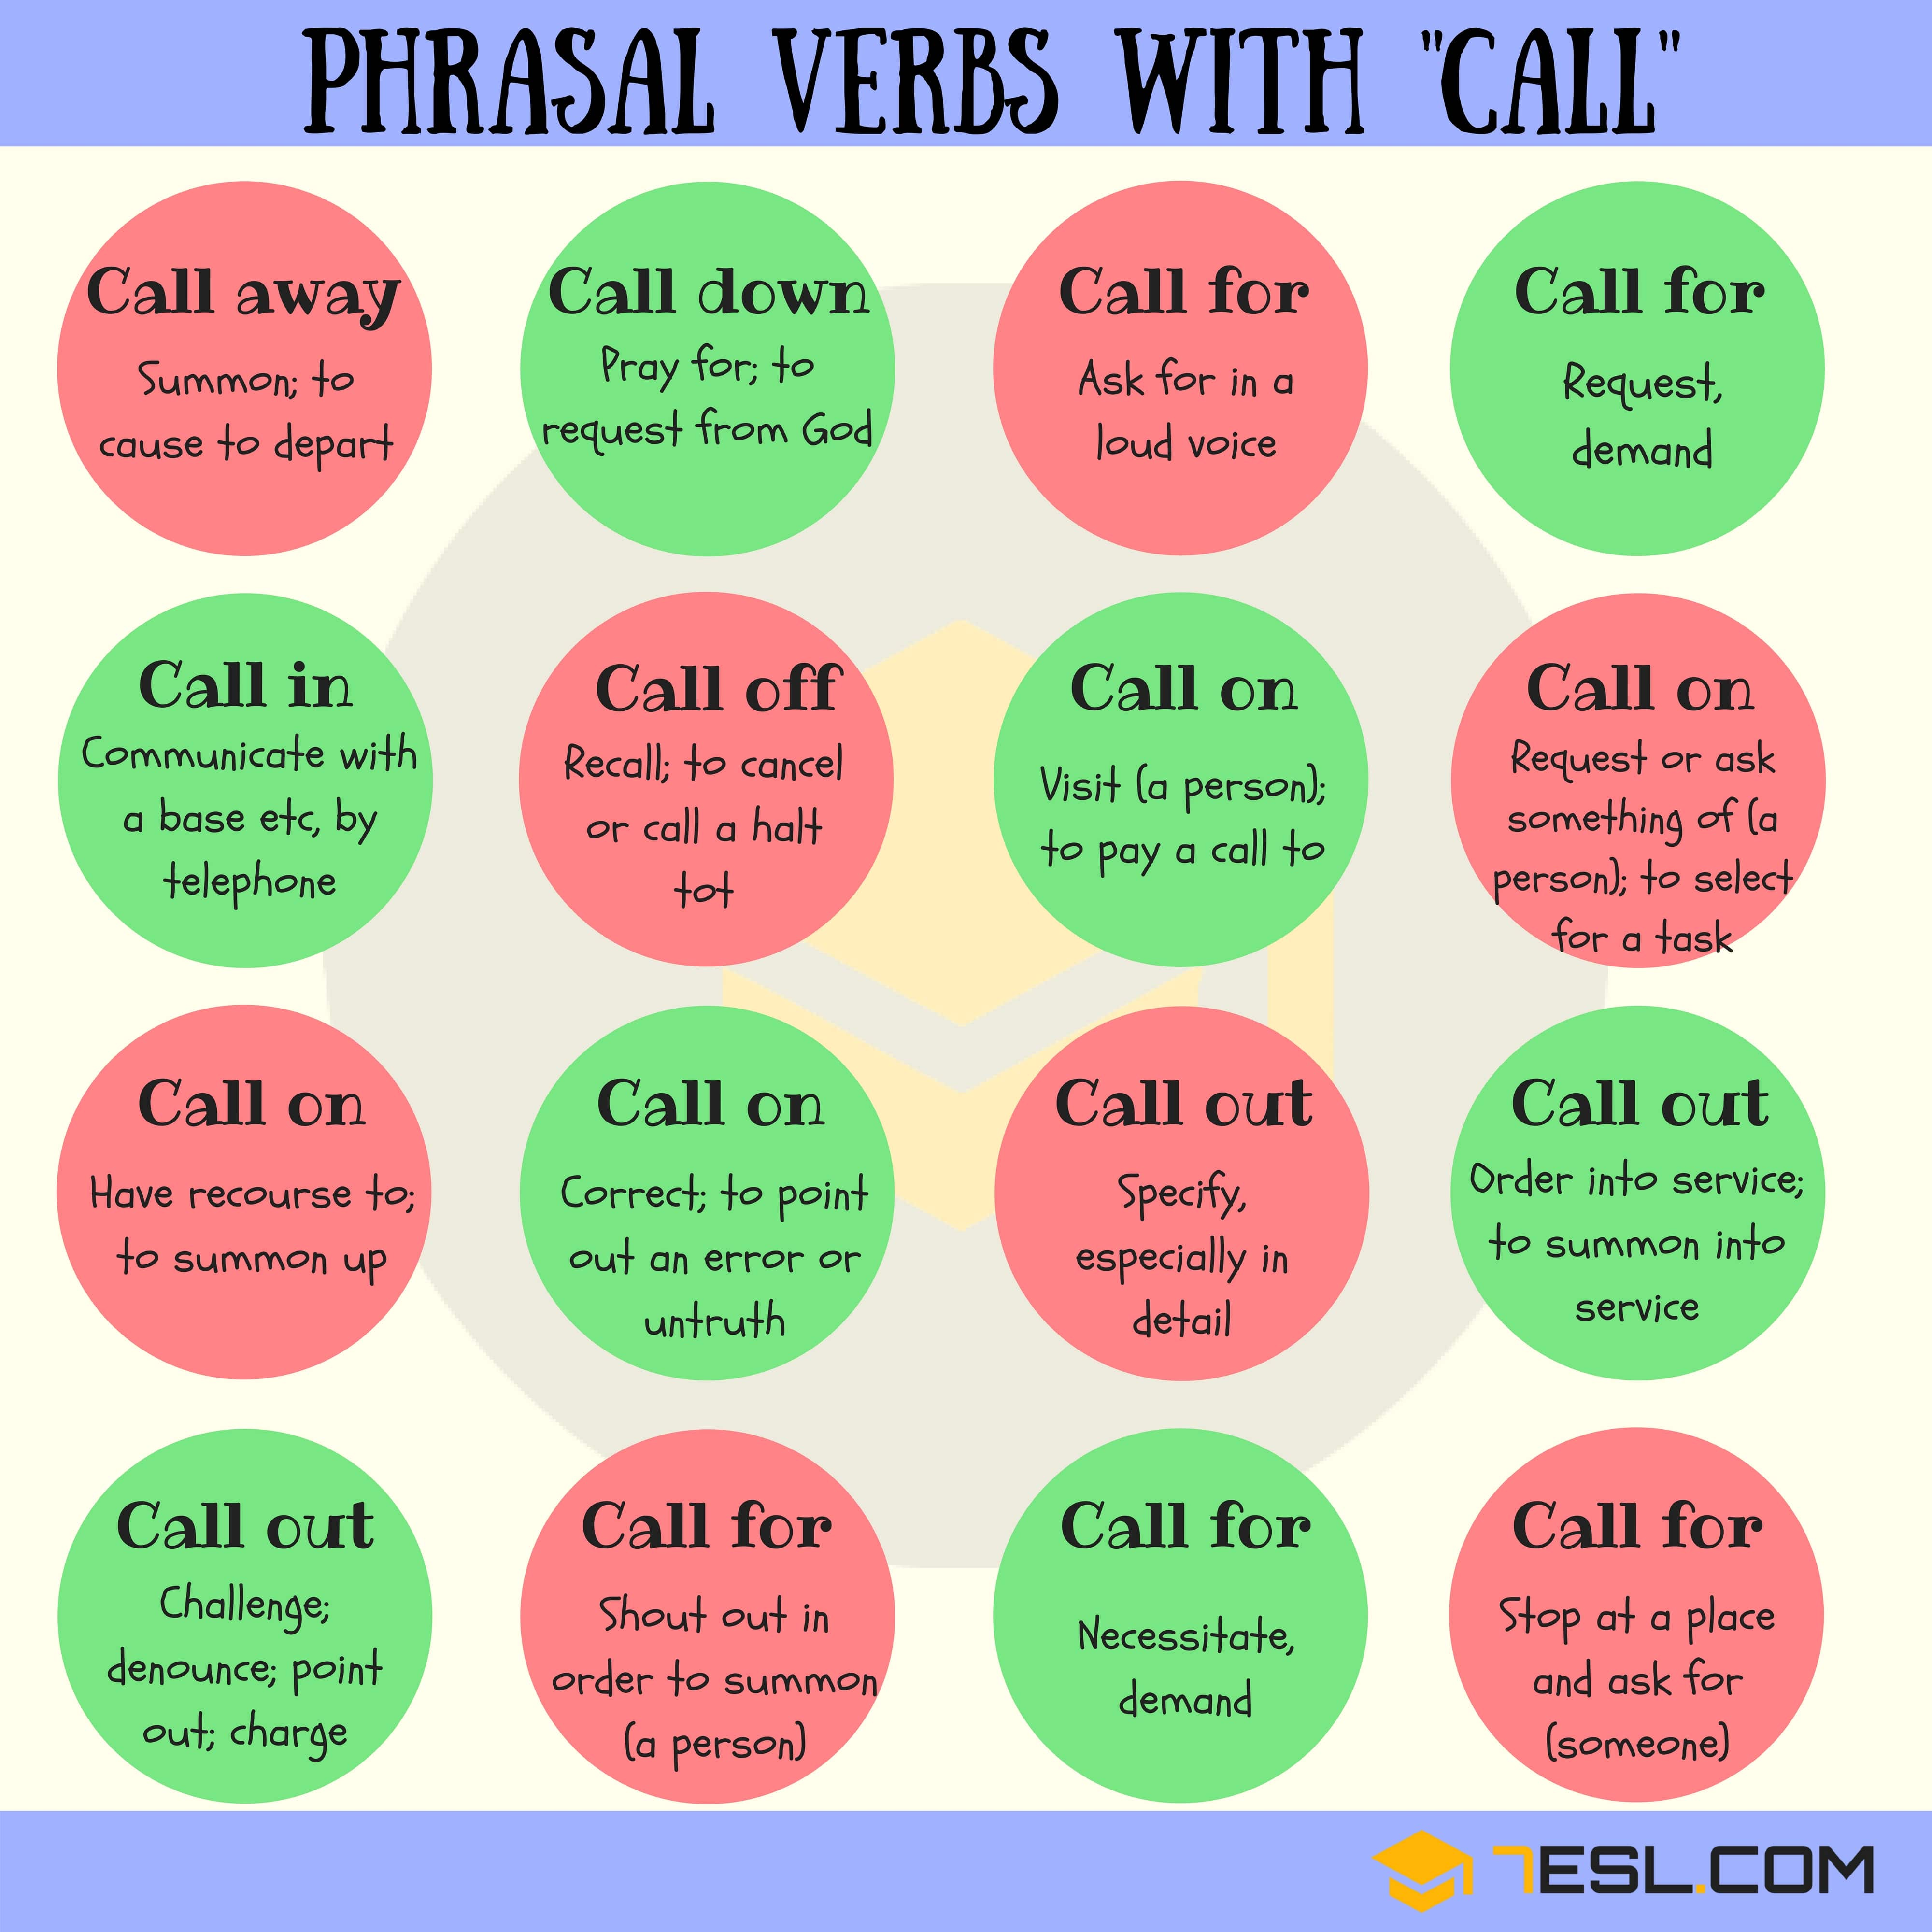 Common Phrasal Verbs with CALL